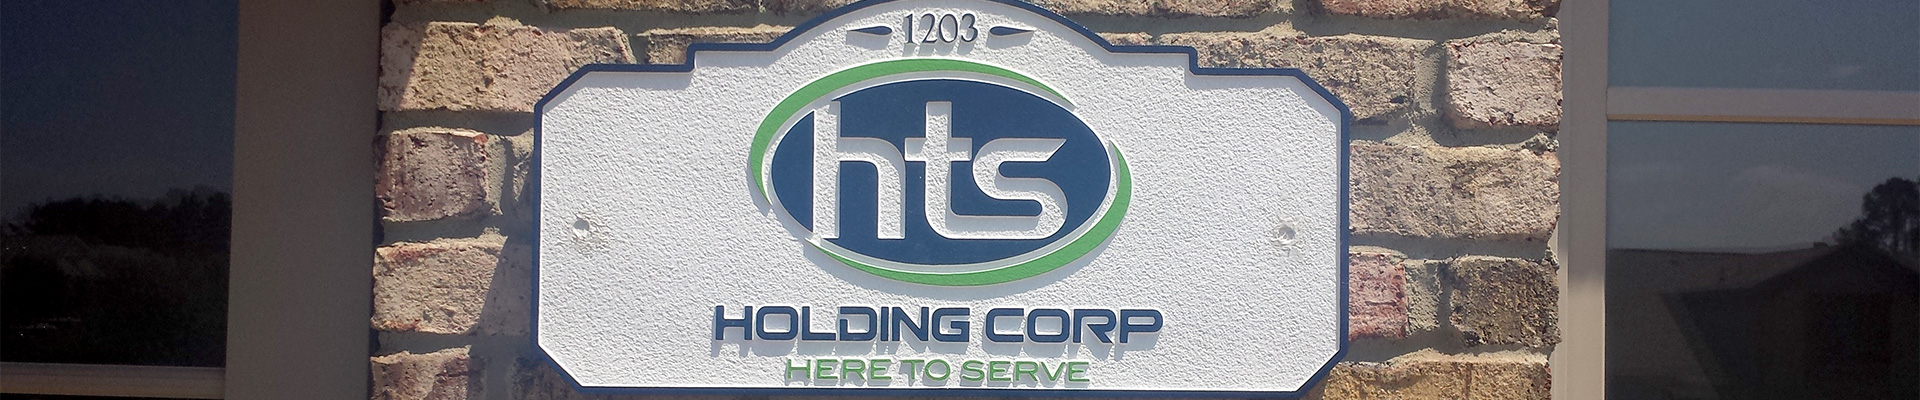 HTS Holding Corp Sandblasted Sign